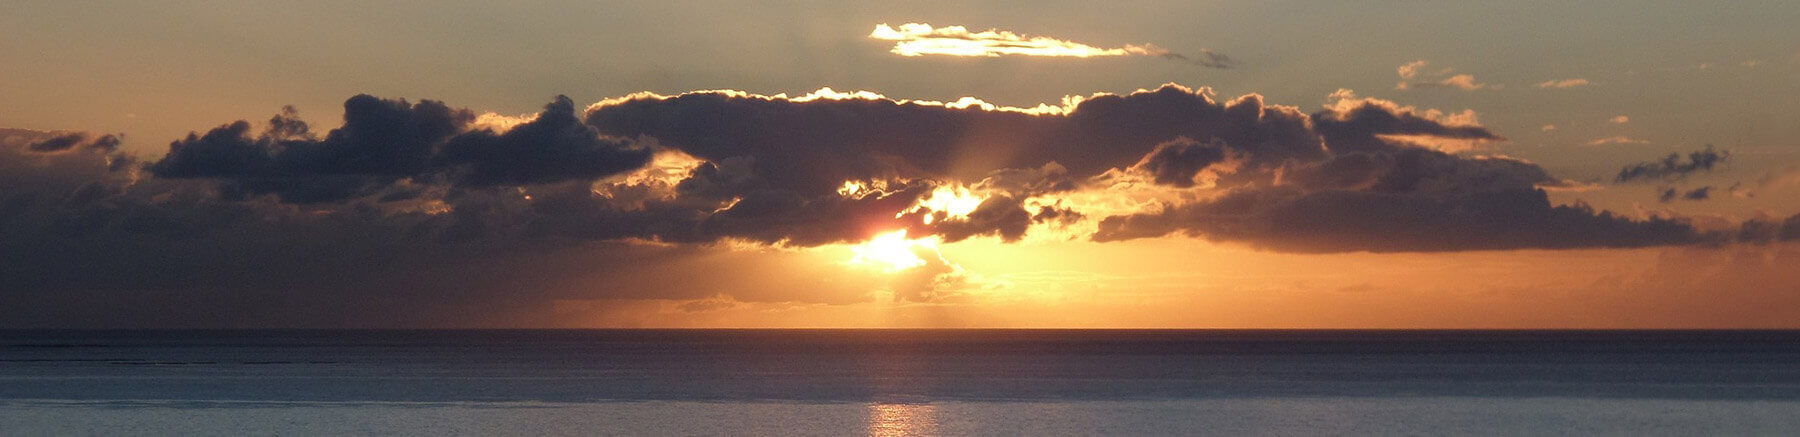 Cloudy sunset over the ocean in Gran Canaria